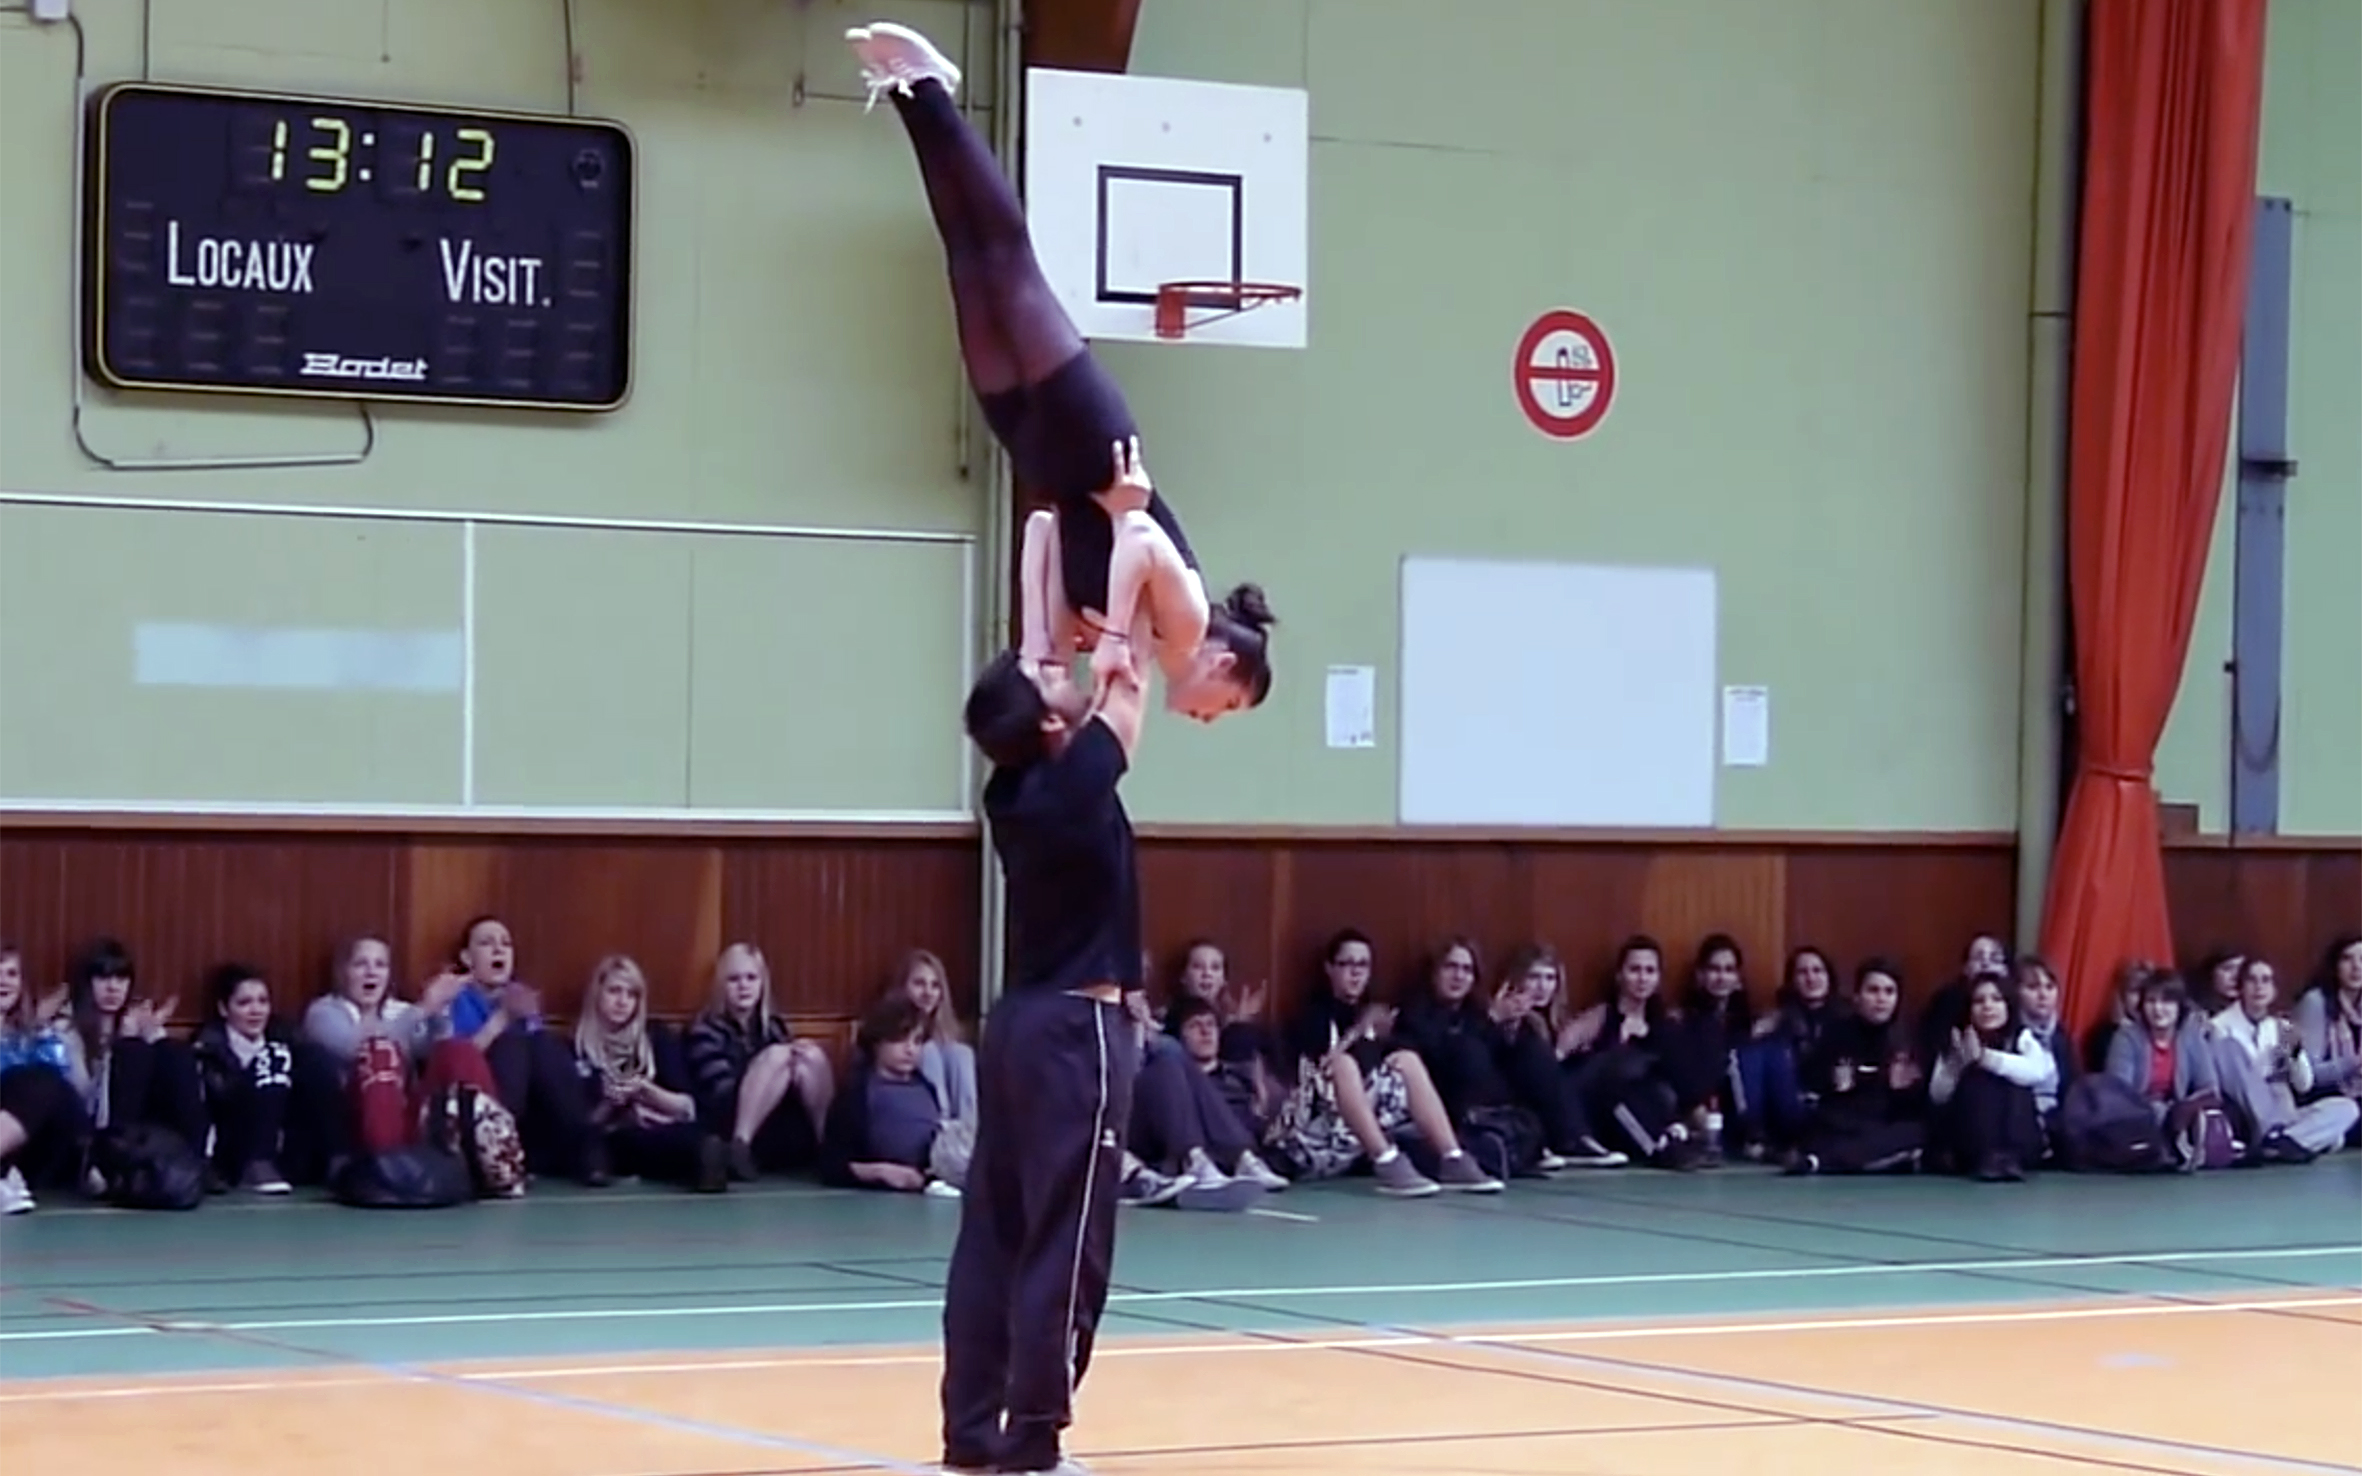 7.ACROBATIC ROCK / France - ACROBATIC ROCK is a dance based on rock'n'roll dance which was brought by the Americans after the Second World War. Further it added more dynamic movements. In France, Acrobatic Rock first appeared in Lyon in 1960.